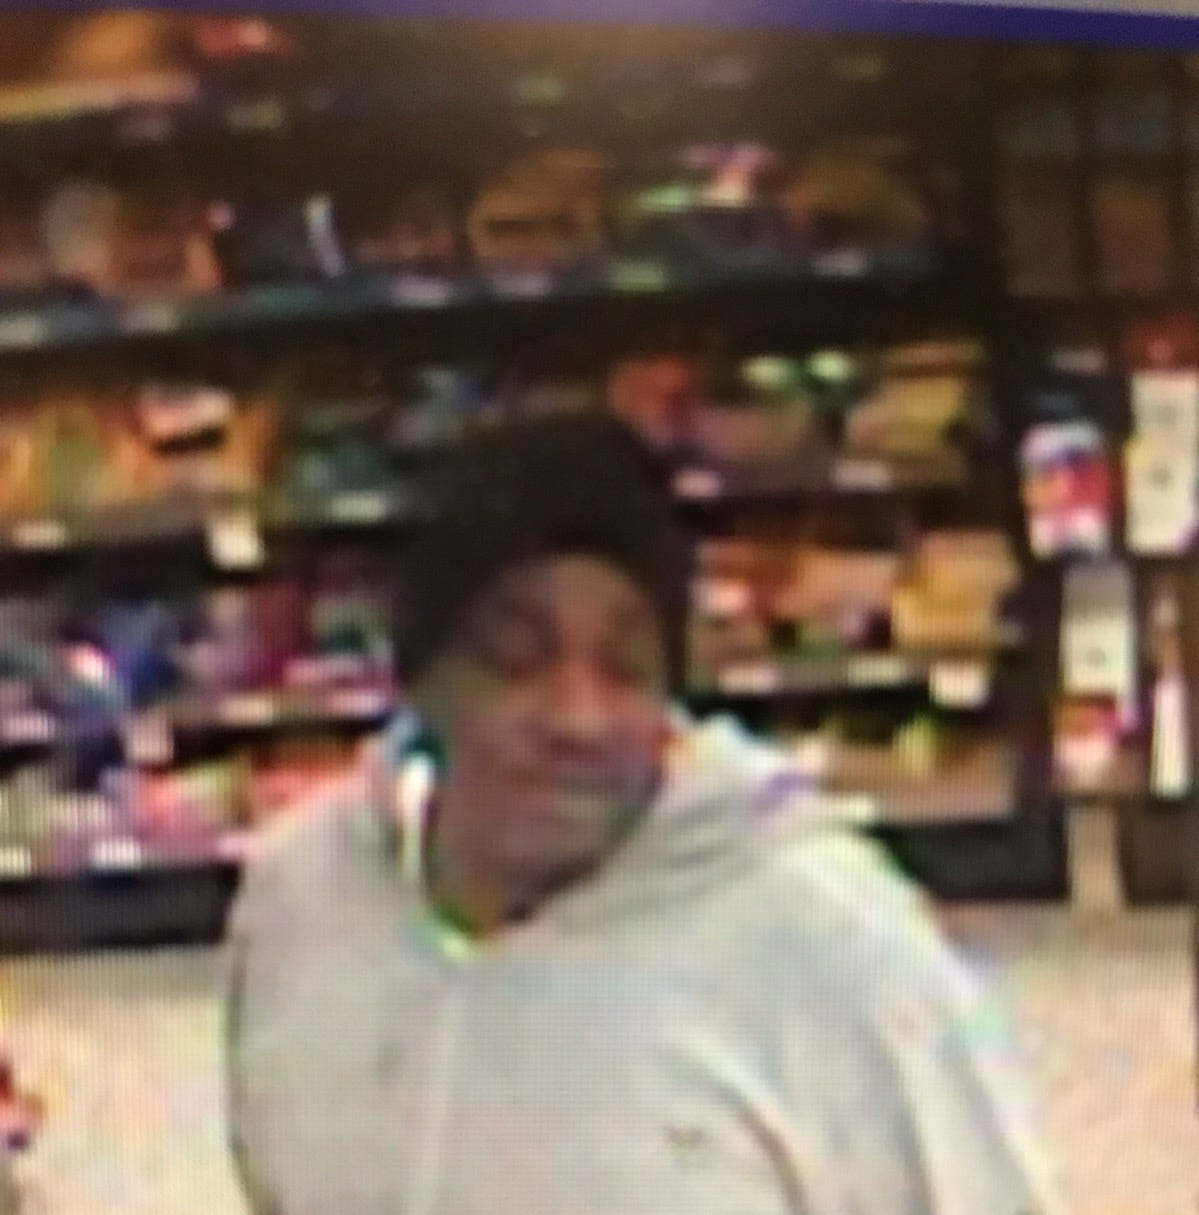 Police: Man exposed himself to two people at a Hockessin Wawa